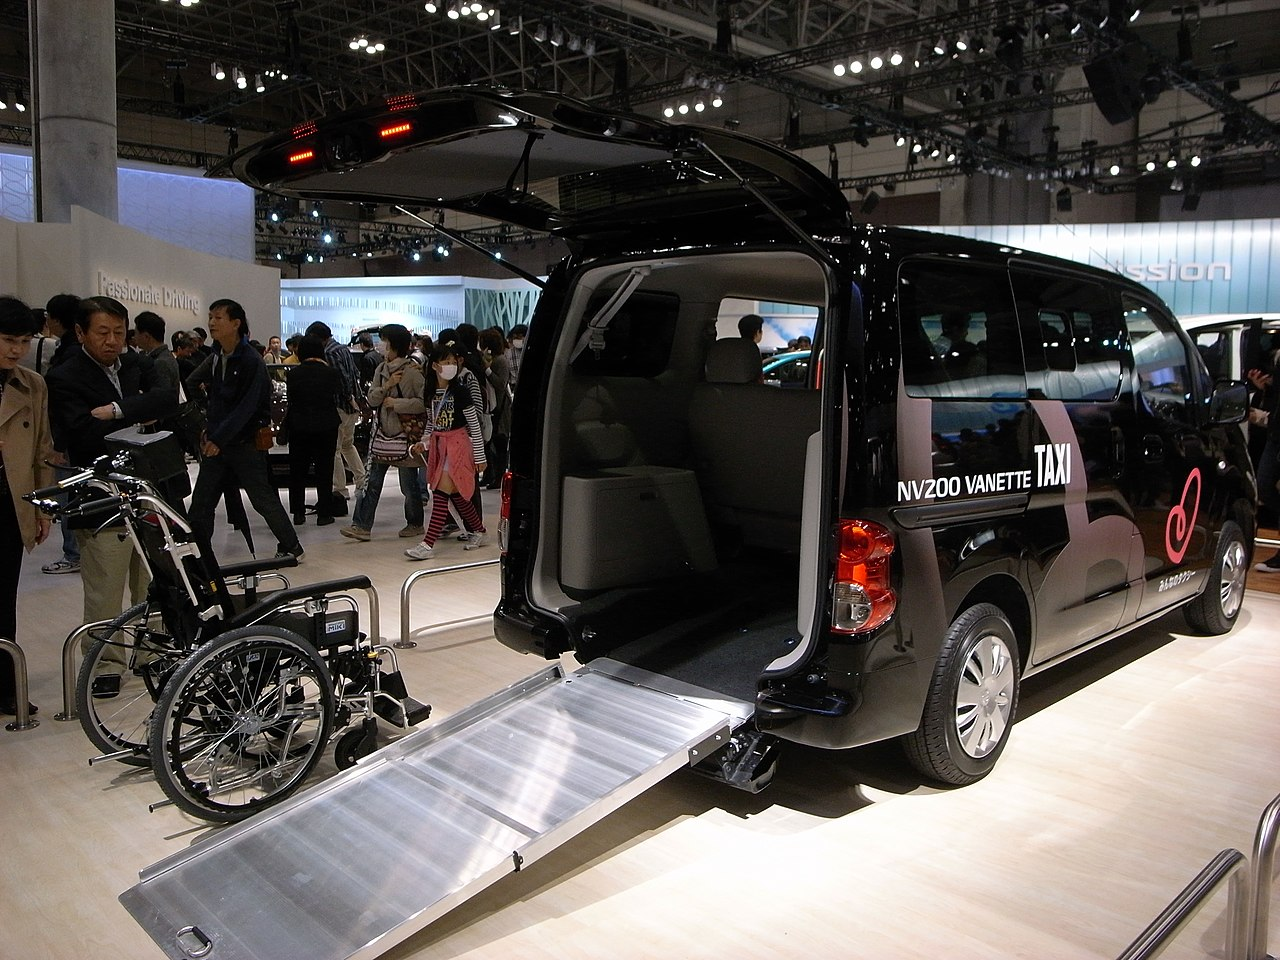 A wheelchair accessible taxi with a rear ramp